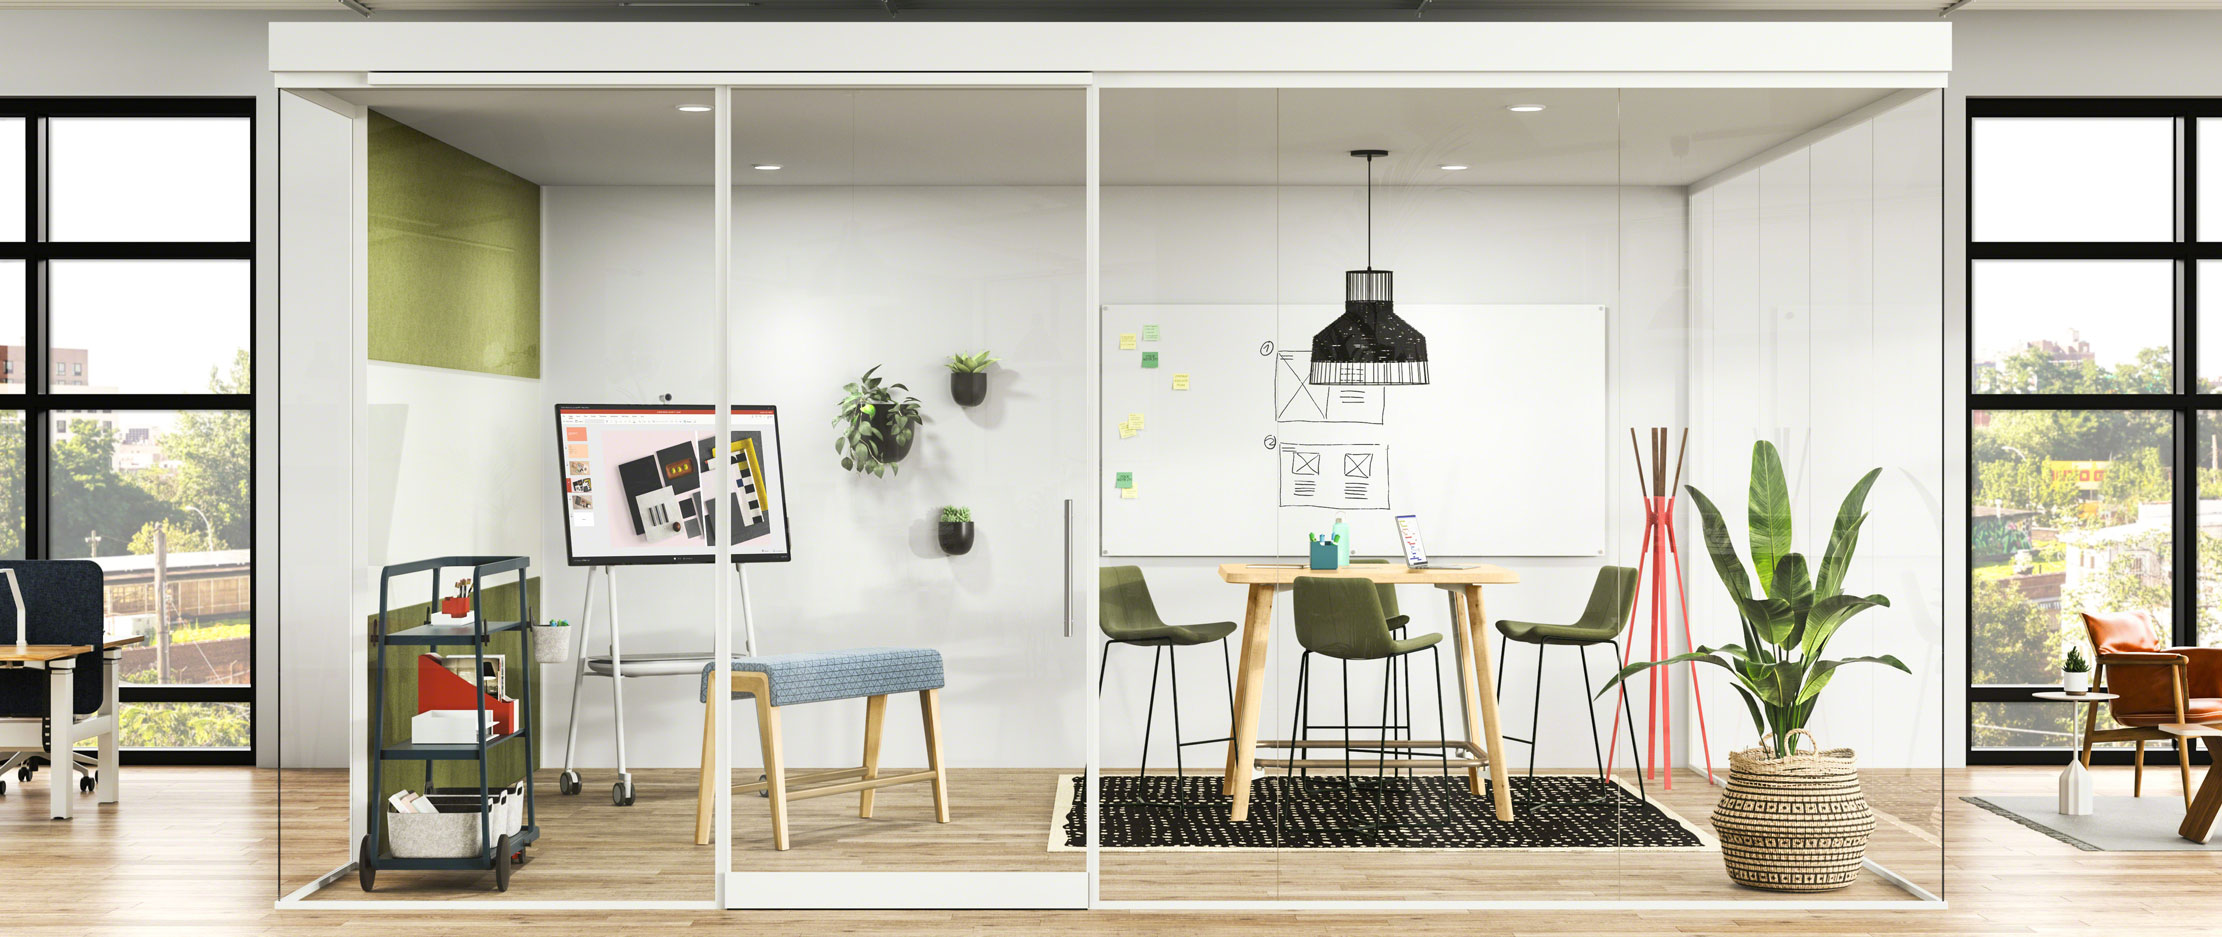 Think Tank Office Space Design Ideas Steelcase